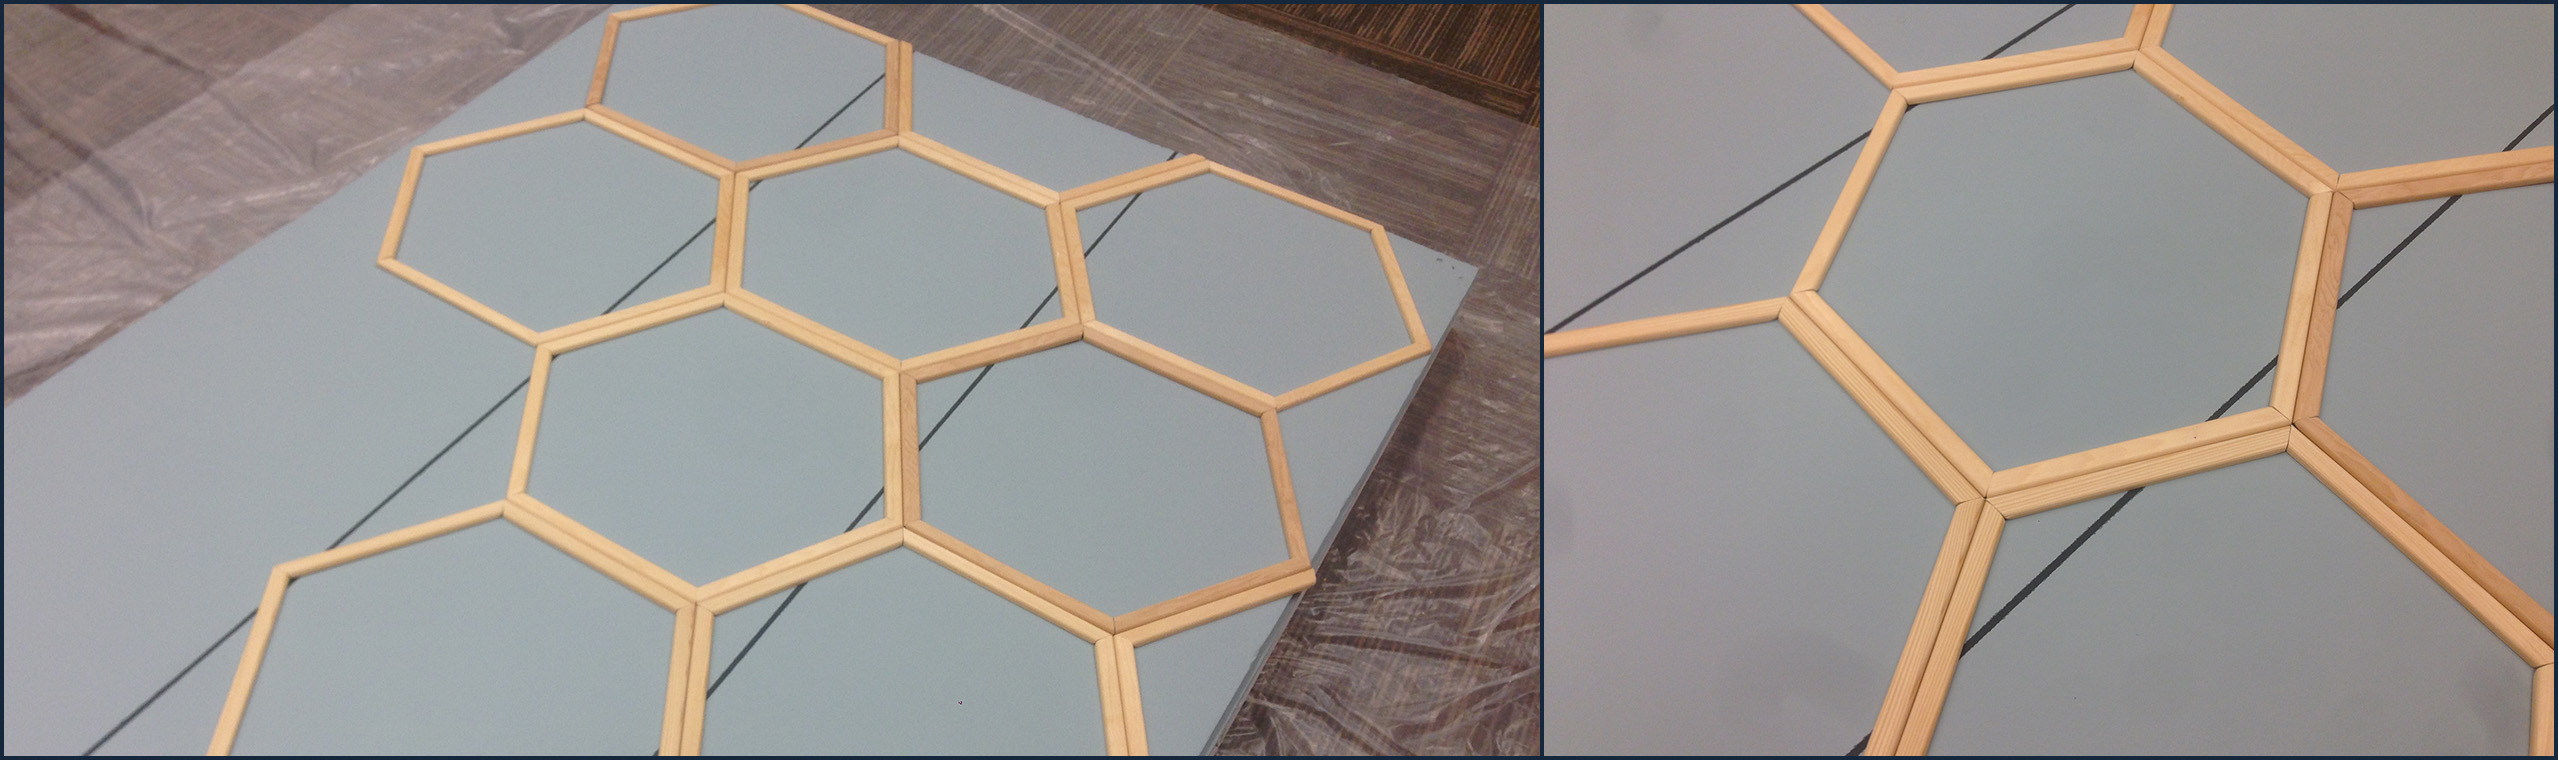 Hexagons1